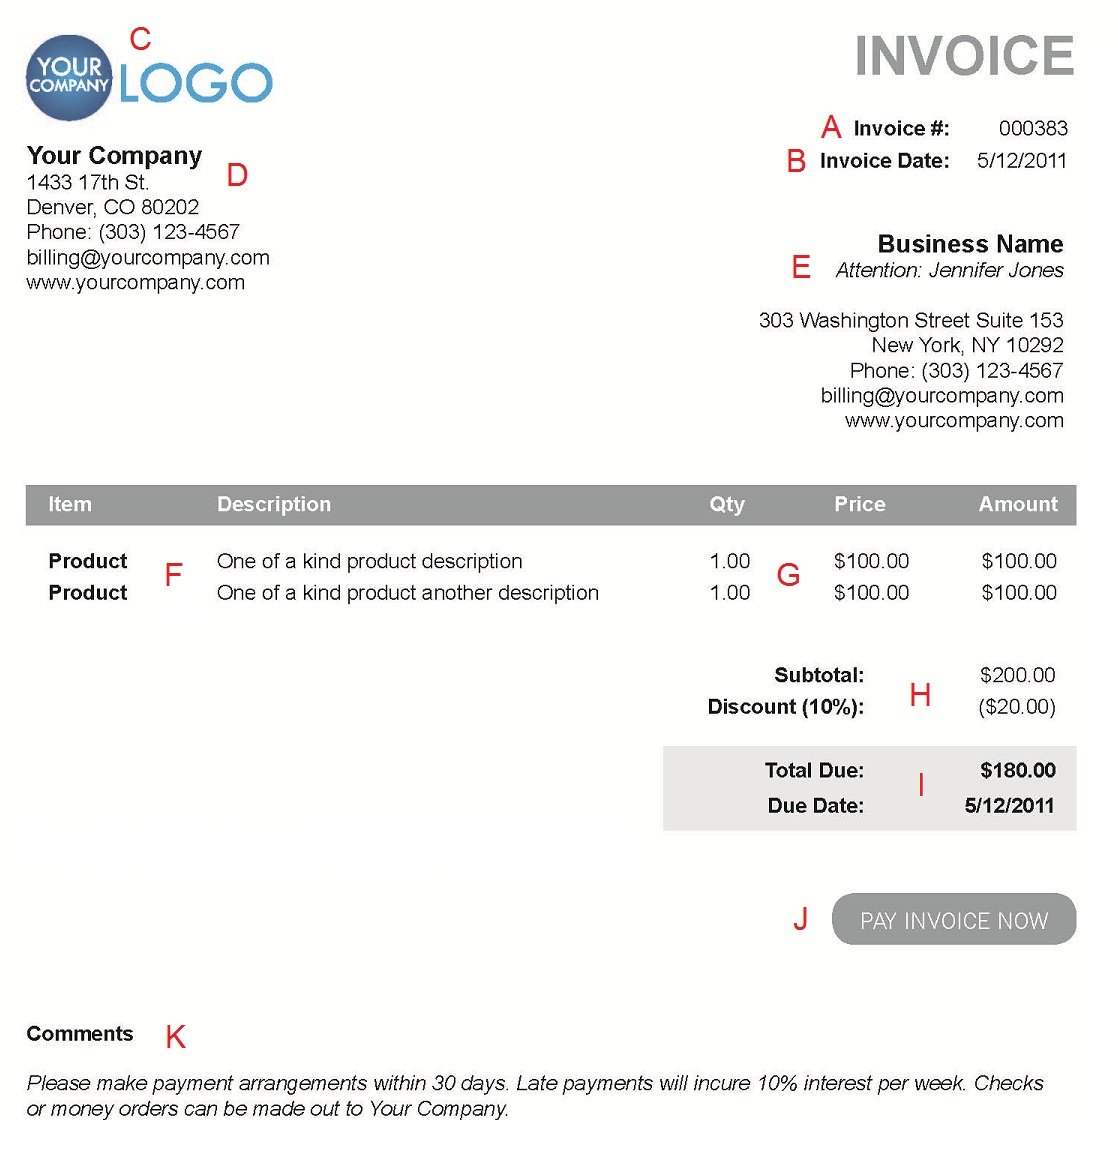 Usdgus  Splendid The  Different Sections Of An Electronic Payment Invoice With Engaging A  With Cool Honda Crv Invoice Price Also Auto Dealer Cost Vs Invoice In Addition Open Office Template Invoice And Drive Invoice Template As Well As Invoice Footer Additionally Carbon Copy Invoice Forms From Paysimplecom With Usdgus  Engaging The  Different Sections Of An Electronic Payment Invoice With Cool A  And Splendid Honda Crv Invoice Price Also Auto Dealer Cost Vs Invoice In Addition Open Office Template Invoice From Paysimplecom